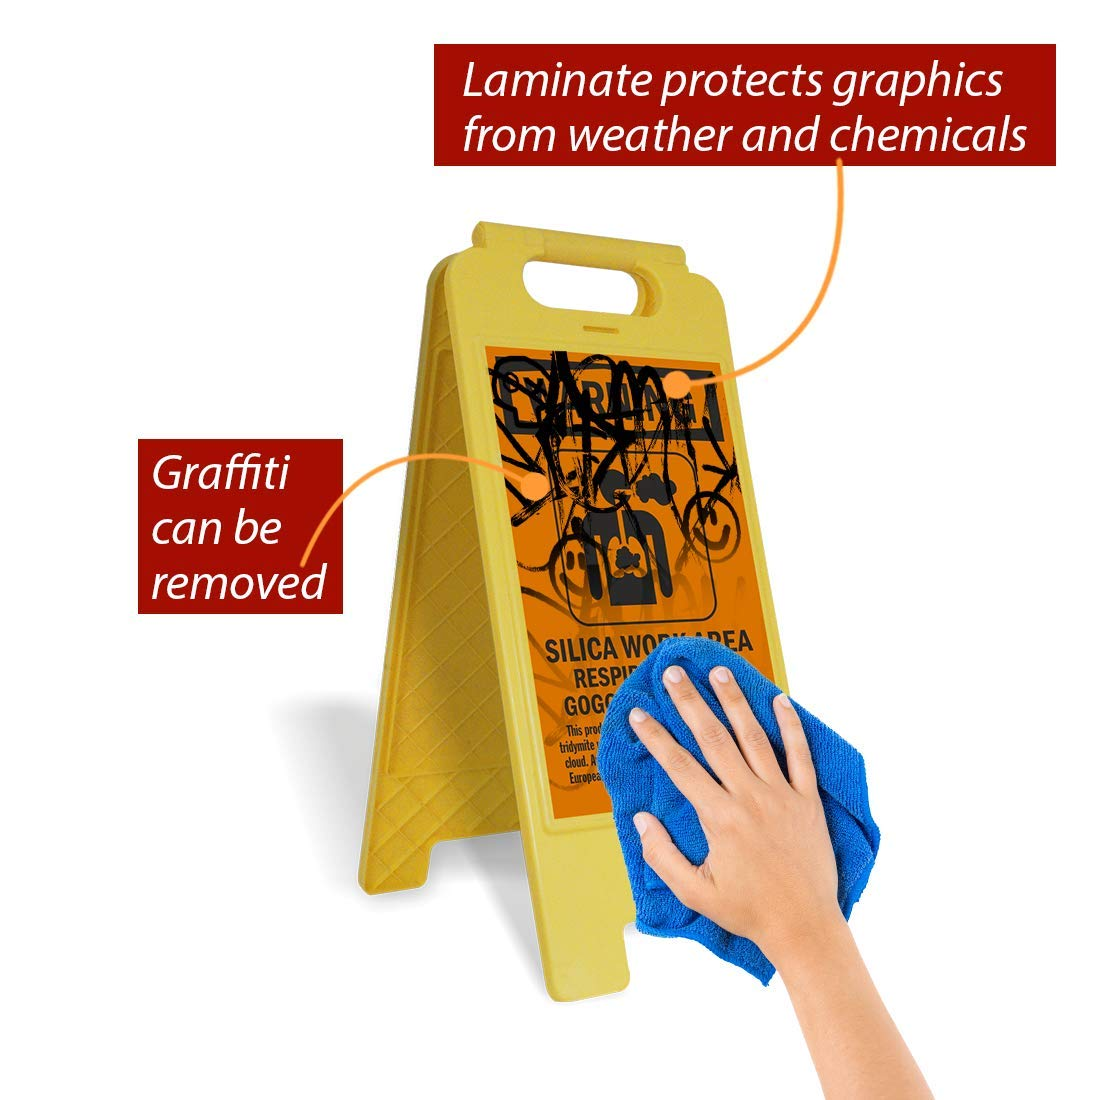 Legend Silica Work Area Respirator and Goggles Required with Graphic Black on Orange Legend Silica Work Area Respirator and Goggles Required with Graphic 25 high x 12 wide Lyle Signs SF-0268-FB-25x12 SmartSign Folding Floor Sign 25 high x 12 wide